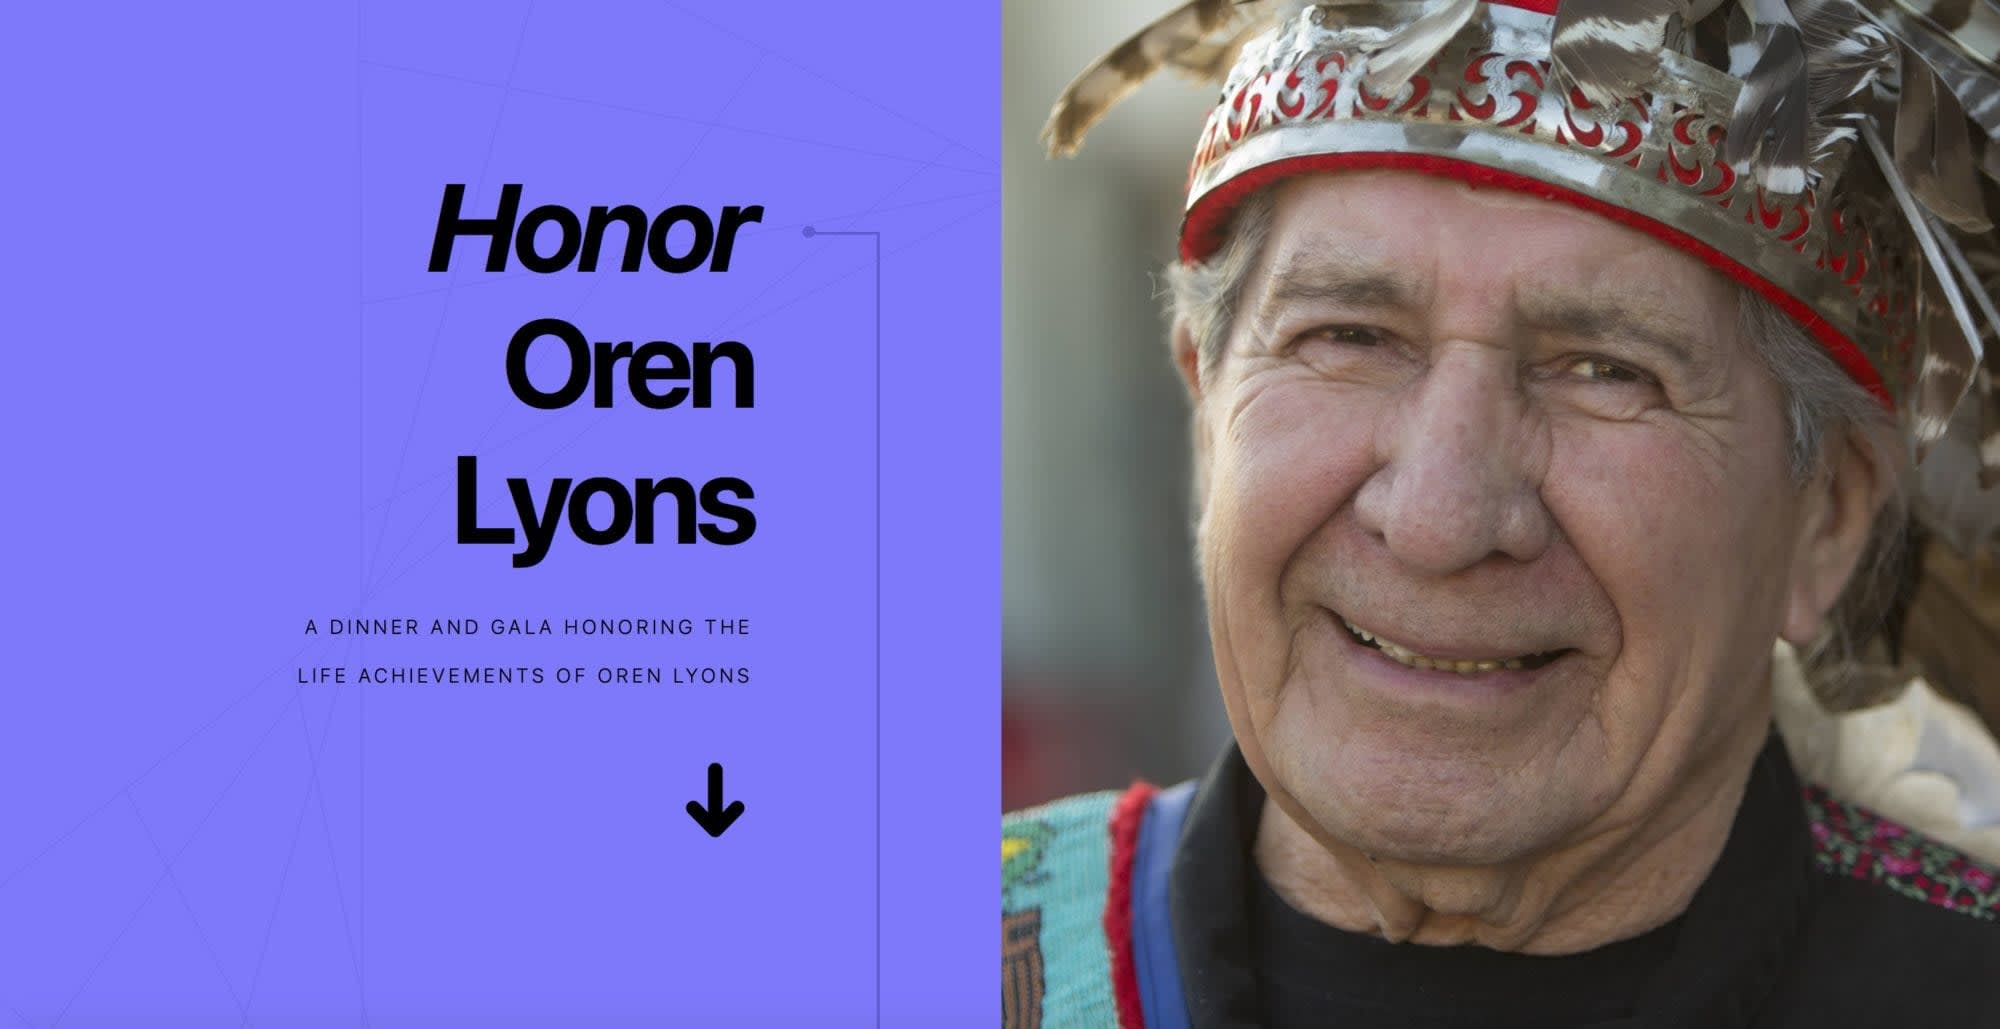 Oren Lyons honored for life achievements